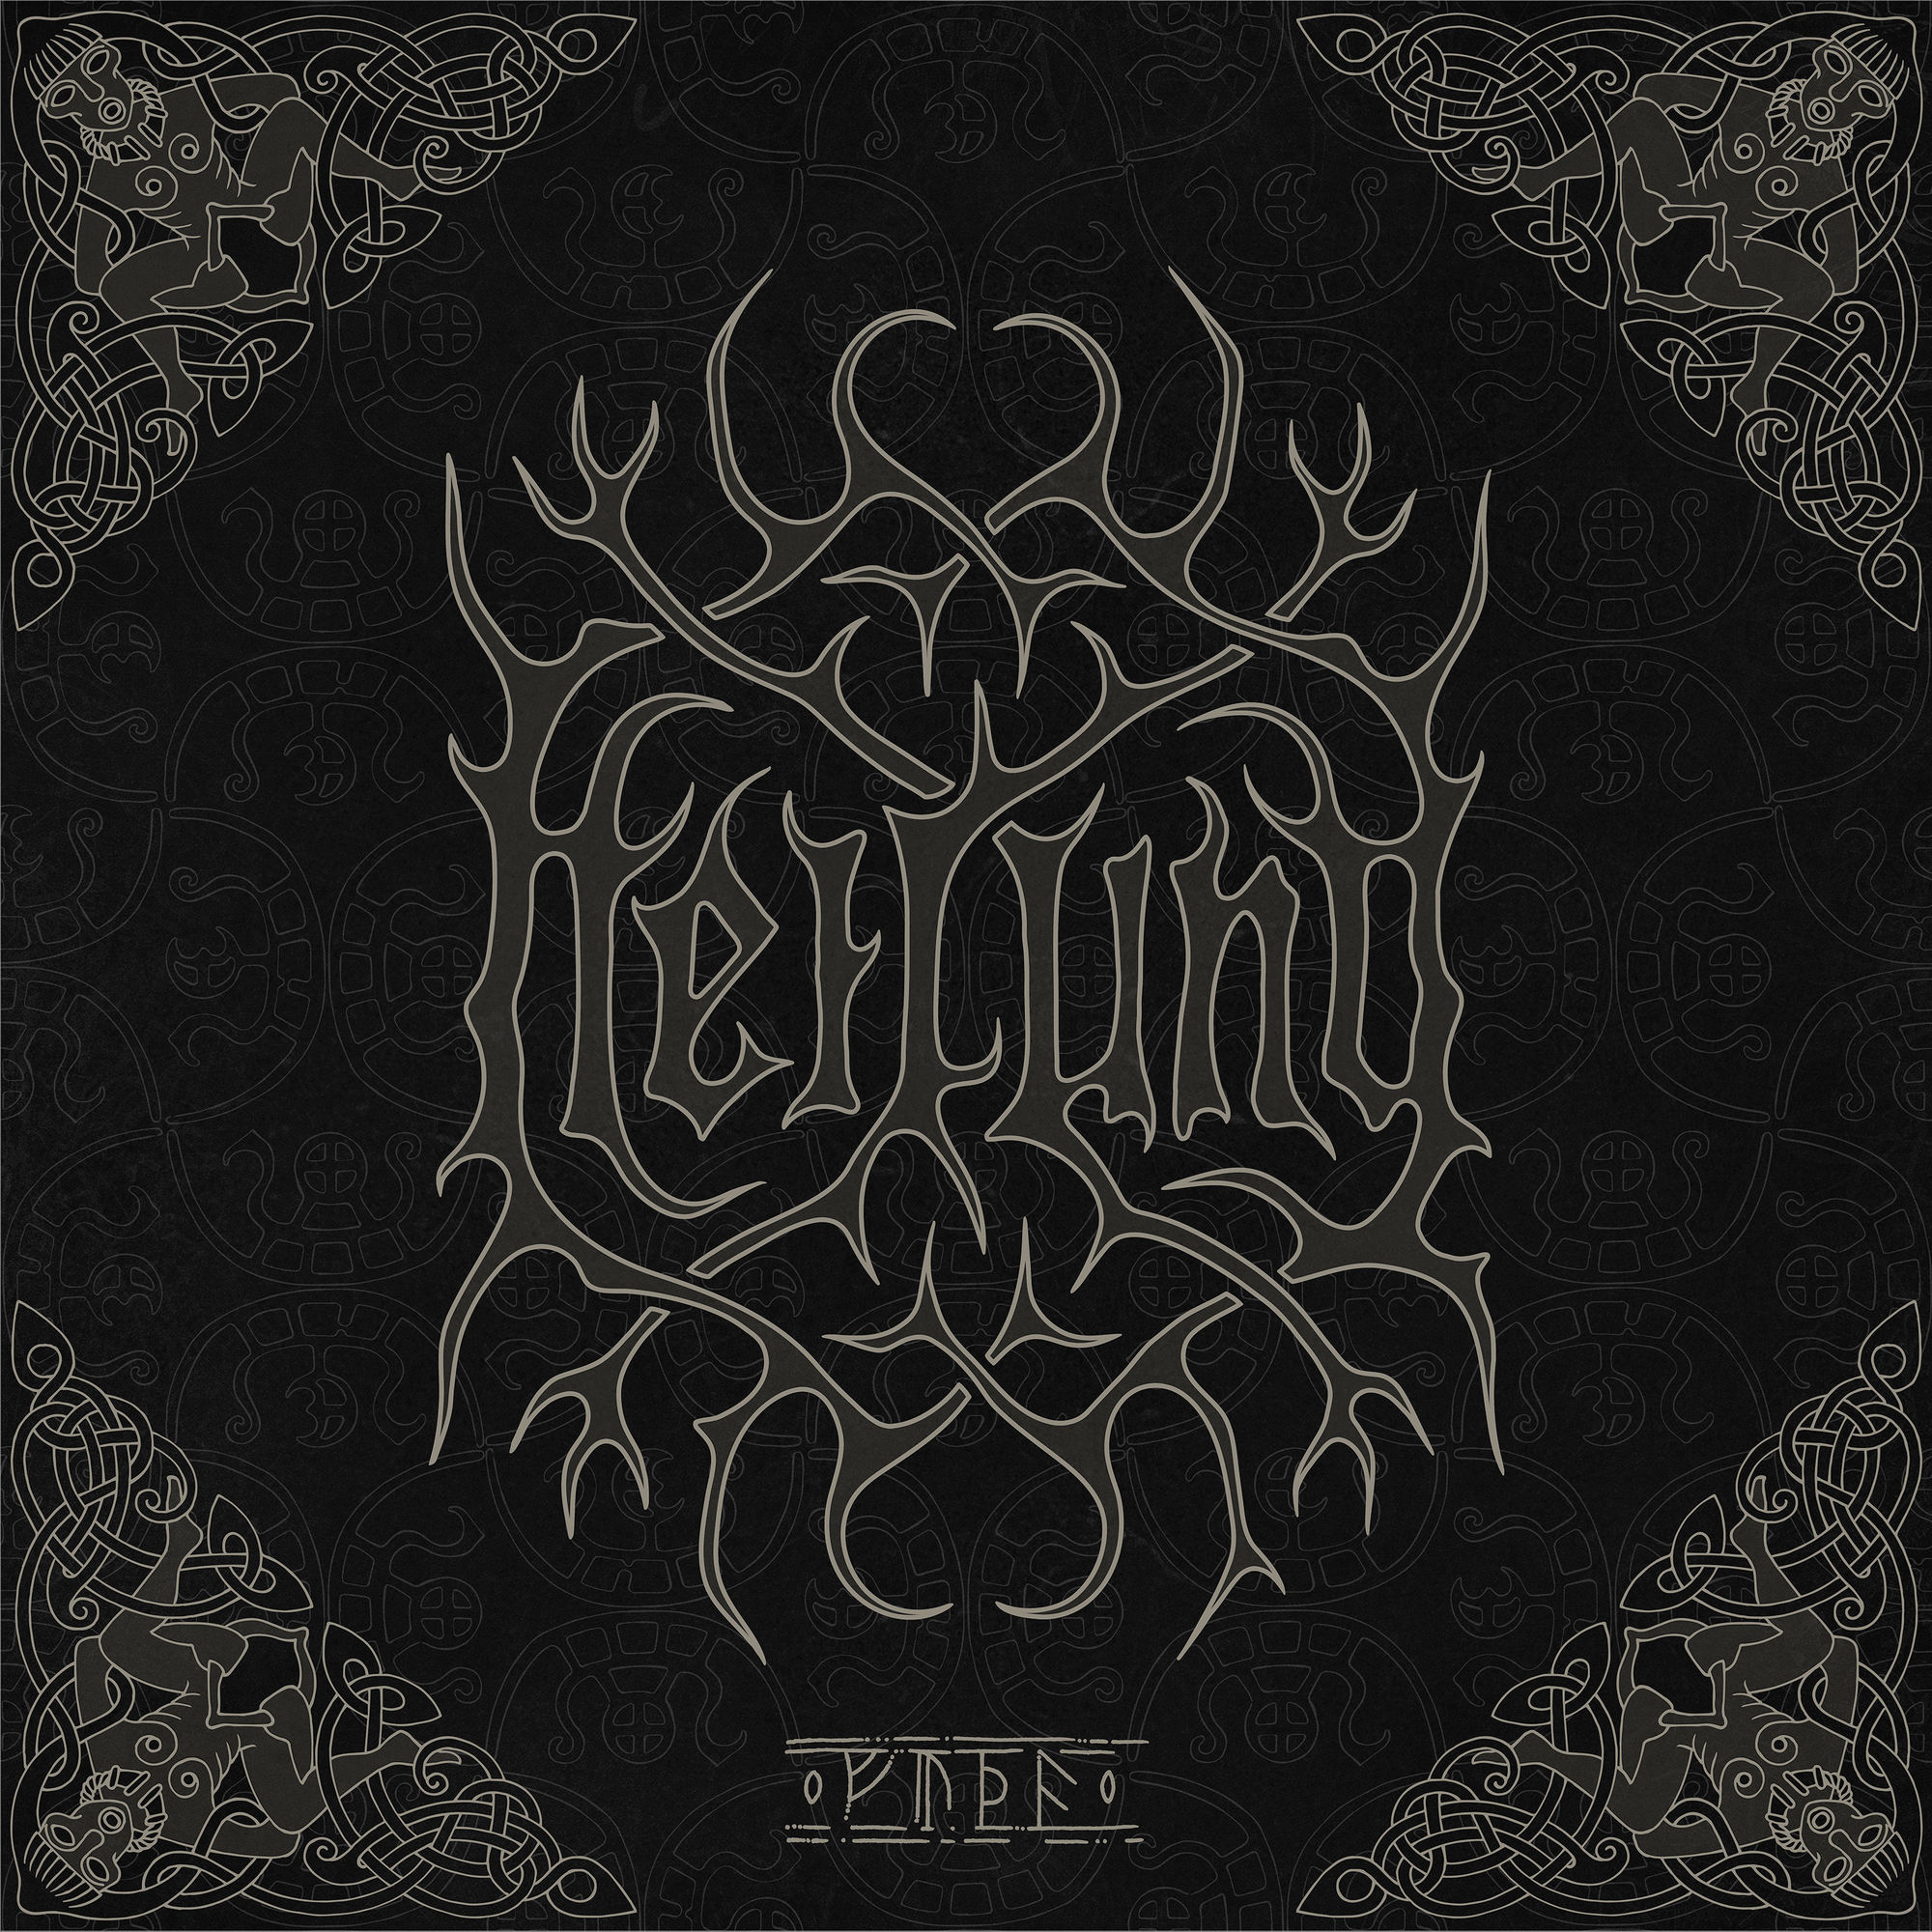 Art for Traust by Heilung